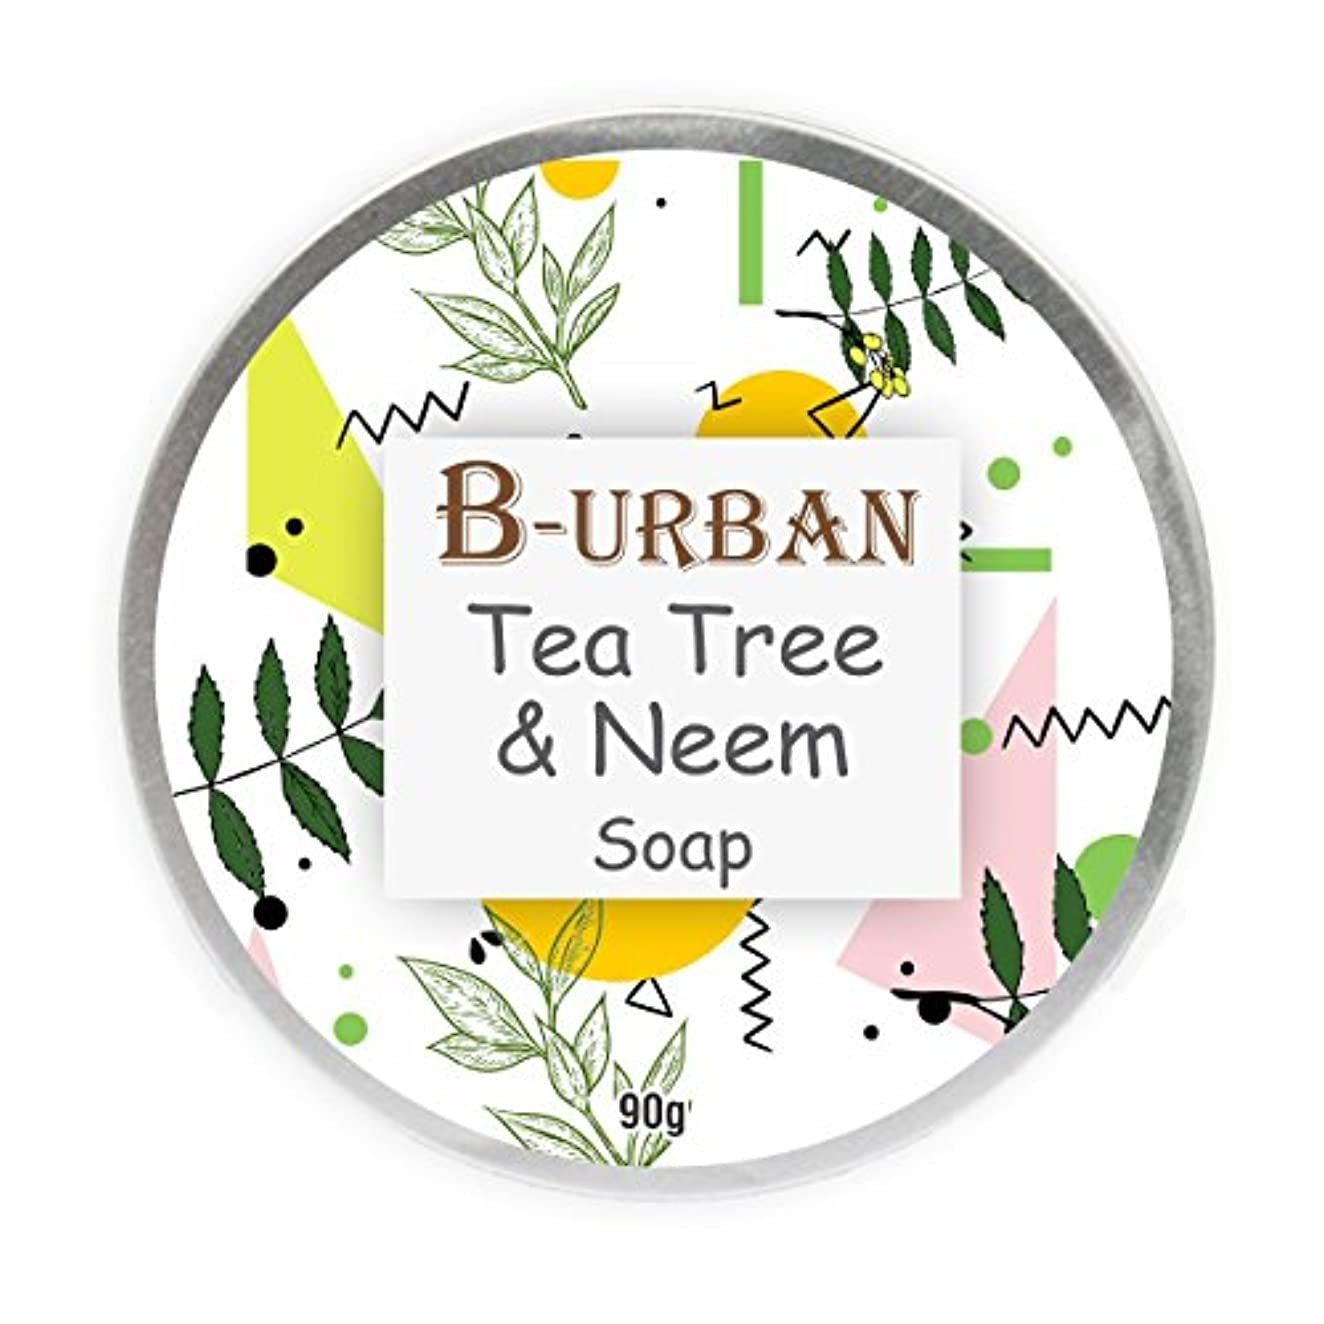 B-Urban Tea Tree And Neem Soap Made With Natural And Organic Ingredients. Paraben And Sulphate Free. Anti Bacterial...